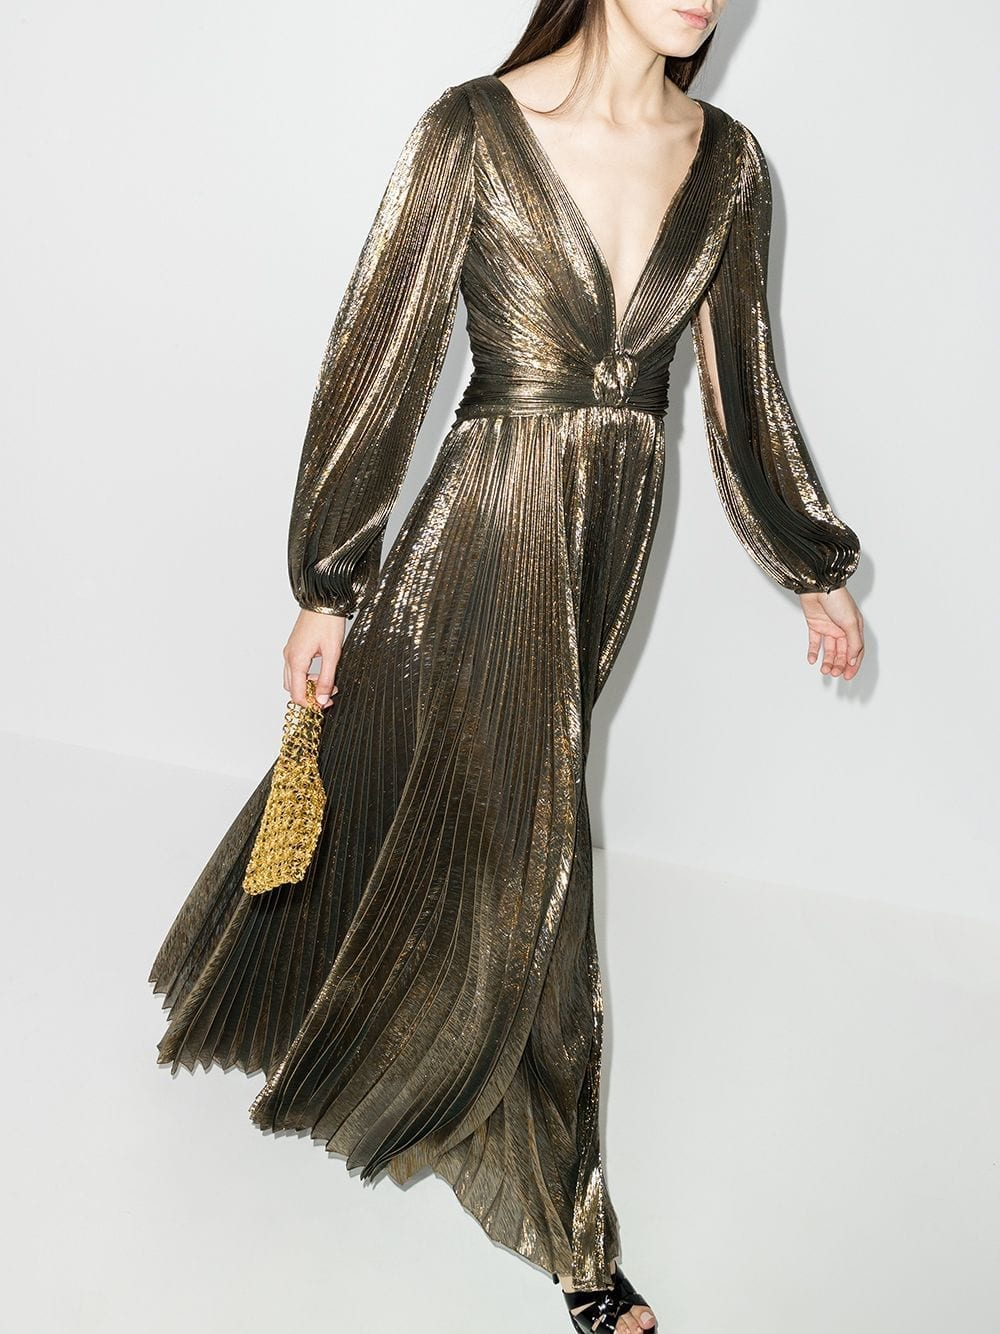 OSCAR DE LA RENTA Metallic Pleated V-neck Gown